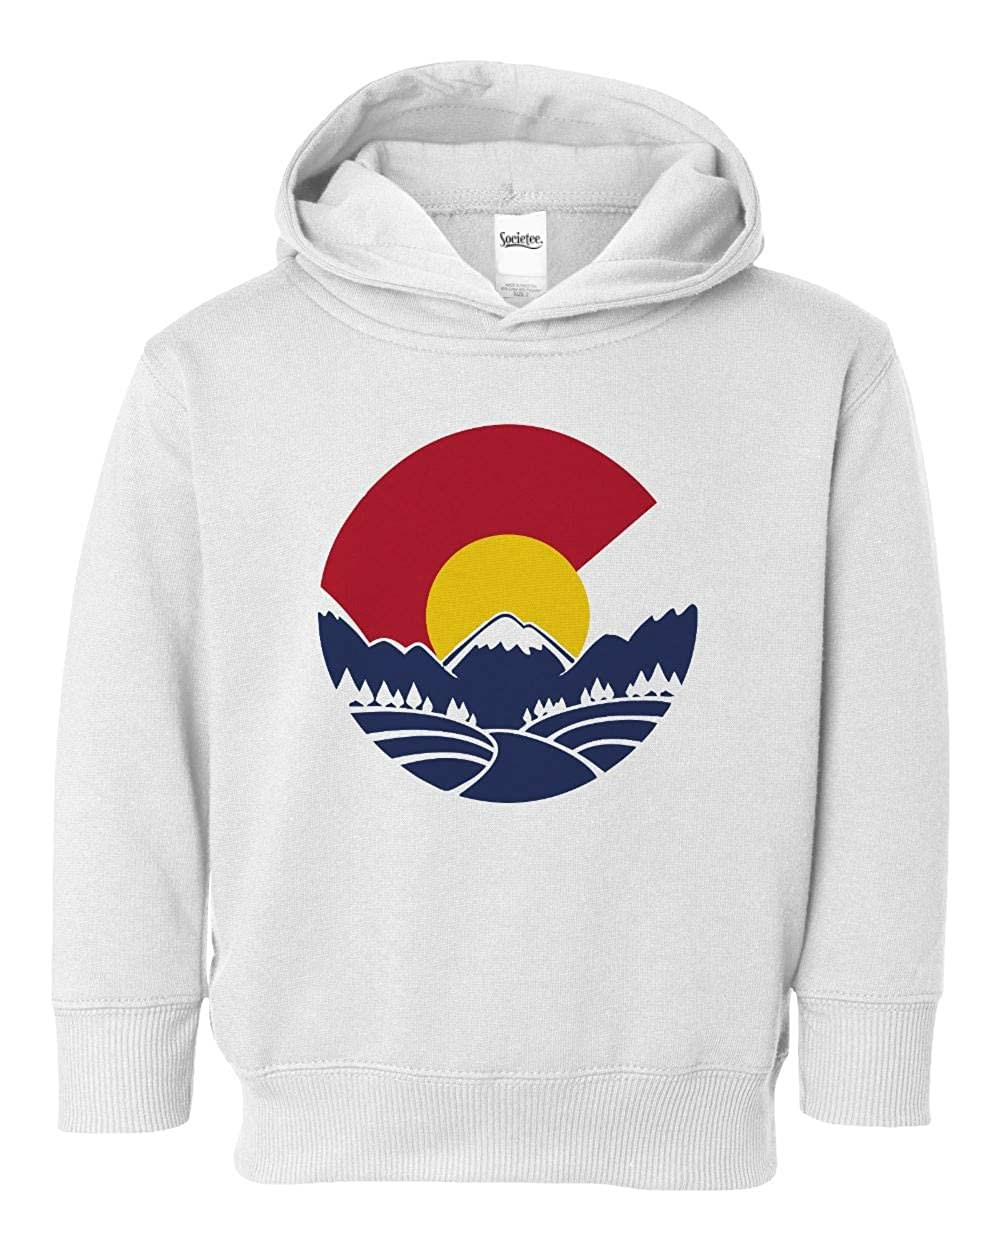 Societee Colorado Mountain Girls Boys Toddler Hooded Sweatshirt